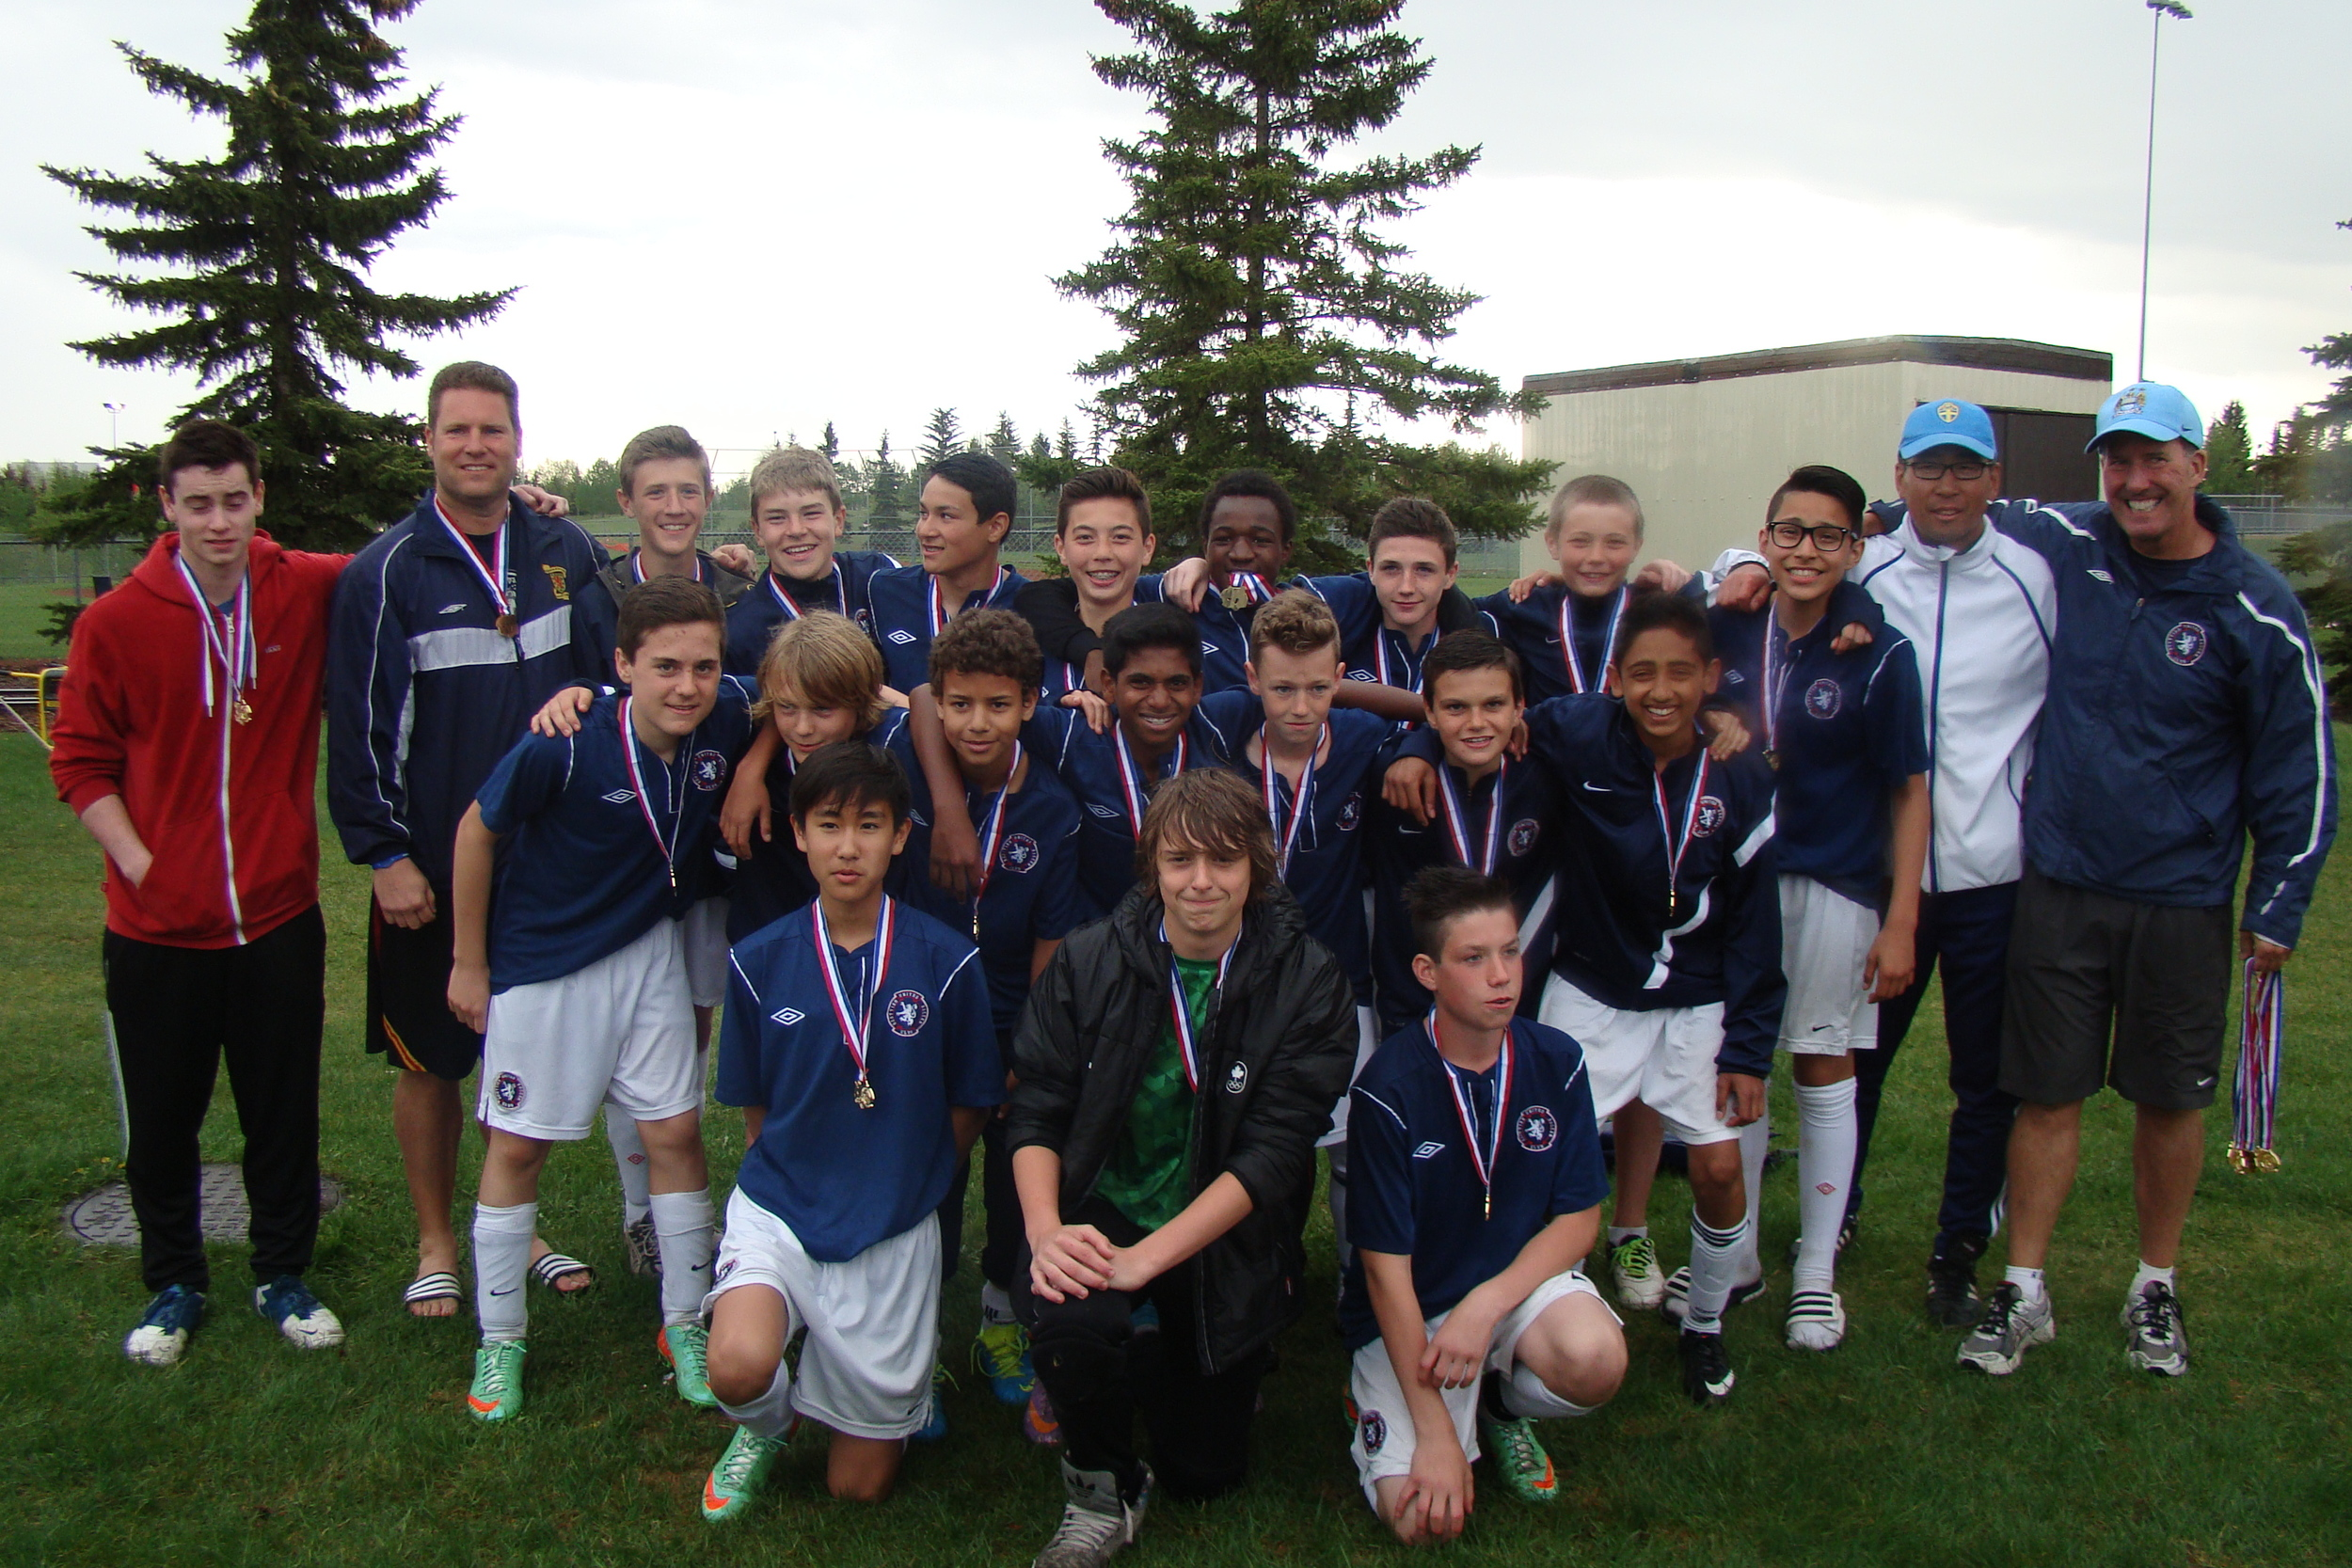 Under 14 Tier I Boys - Millwoods Kick-Off Classic Gold Medalists